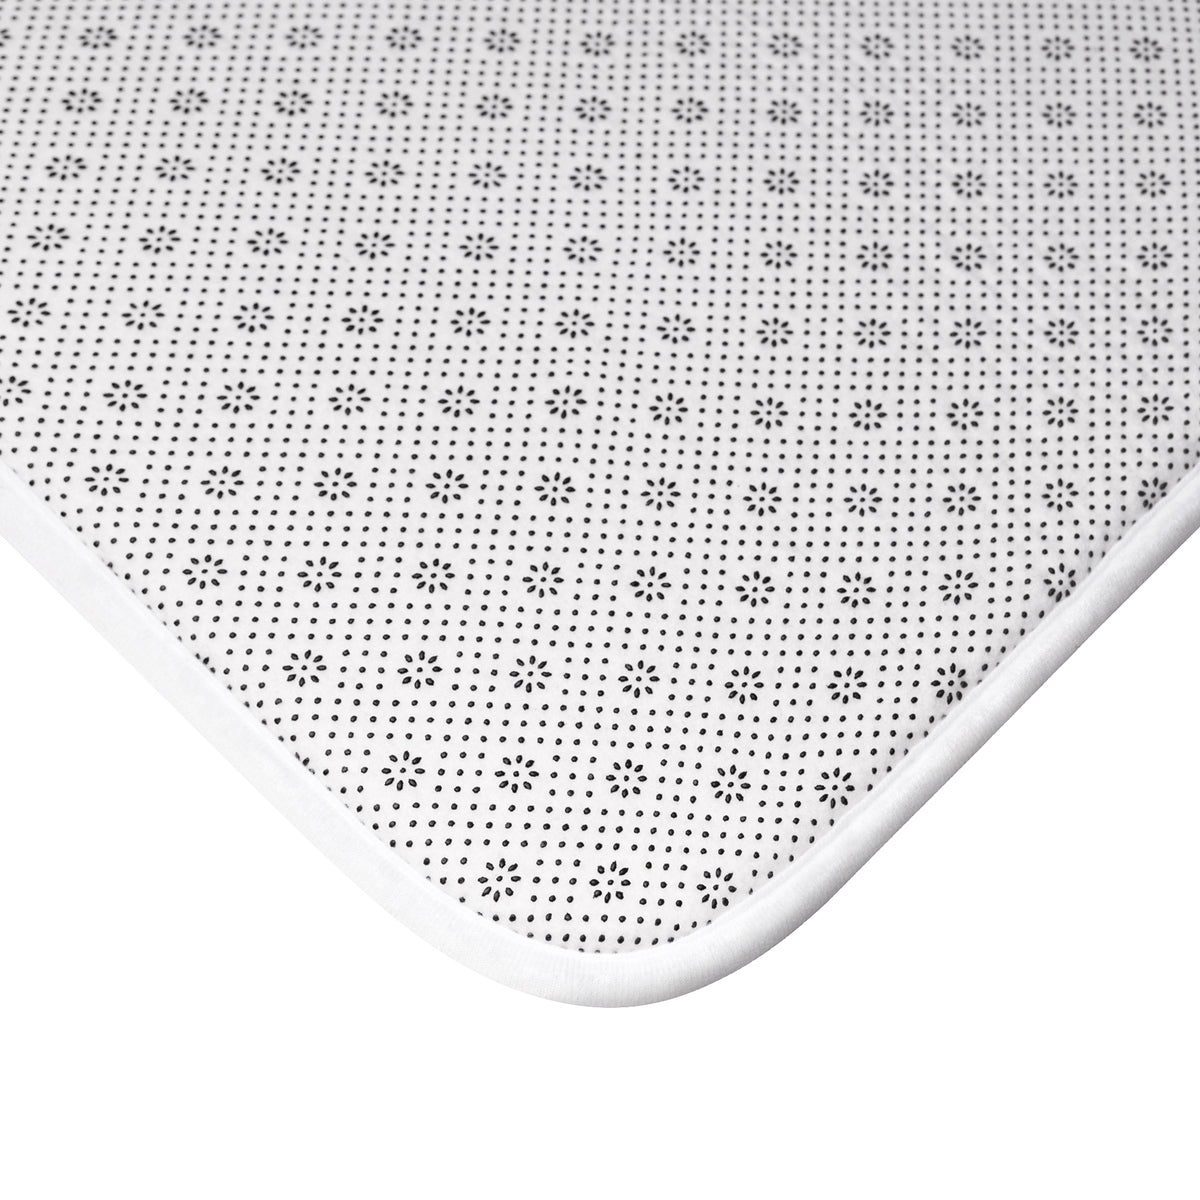 BEYOND LAVISH SIGNATURE Bath Mat